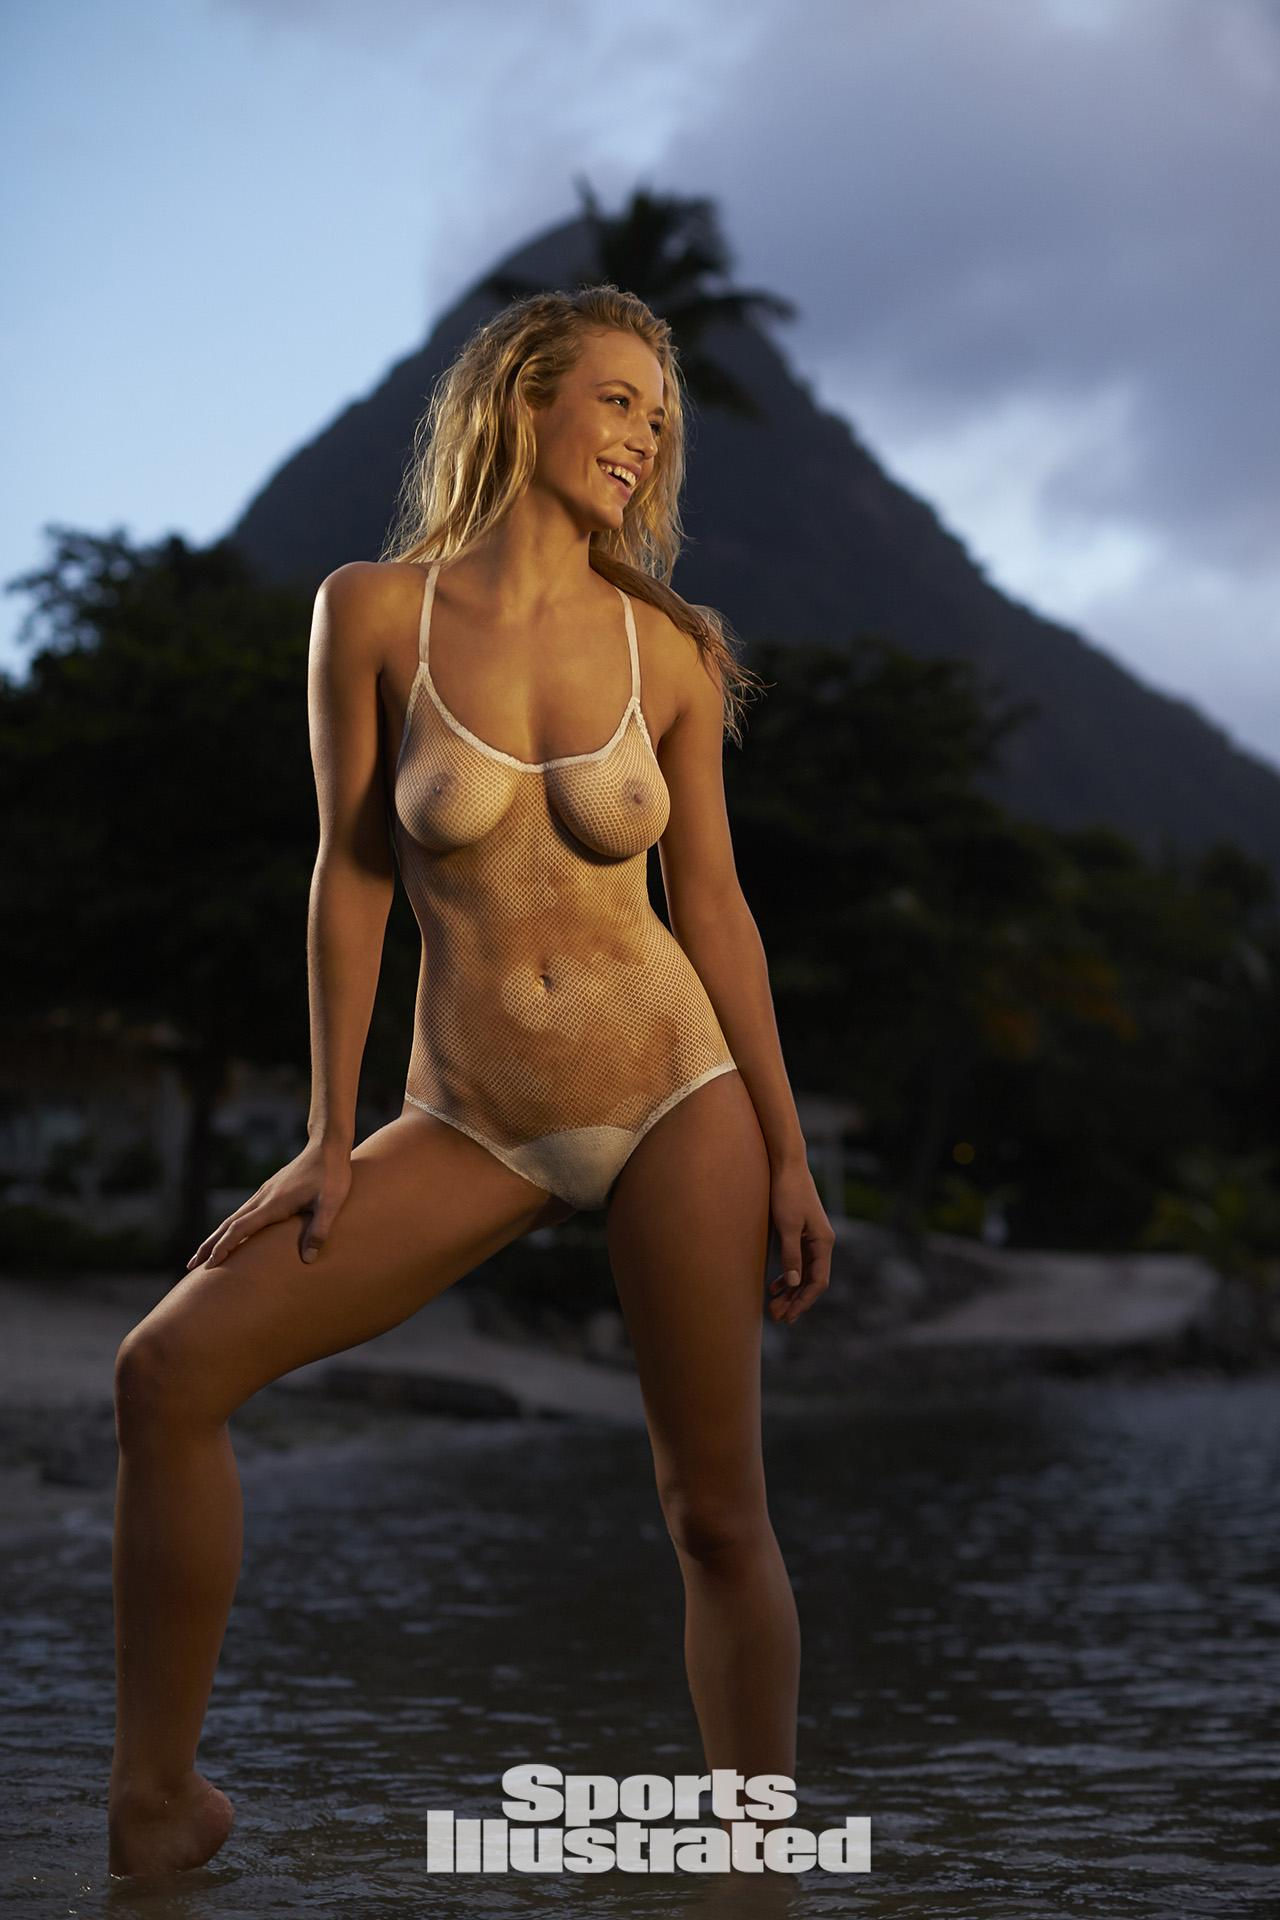 Naked pictures of christie brinkley